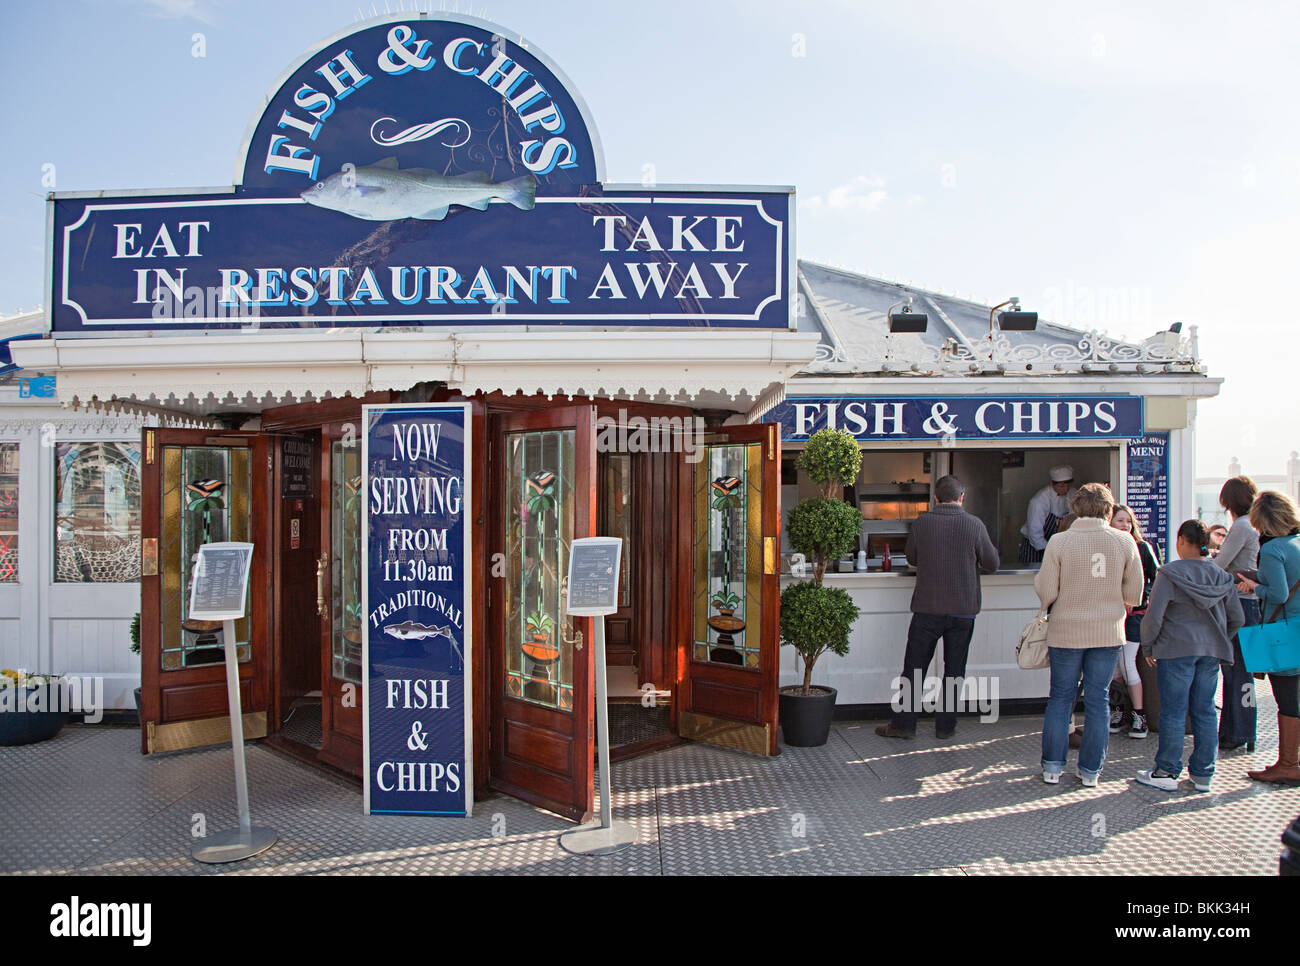 Chris S Fish Restaurant